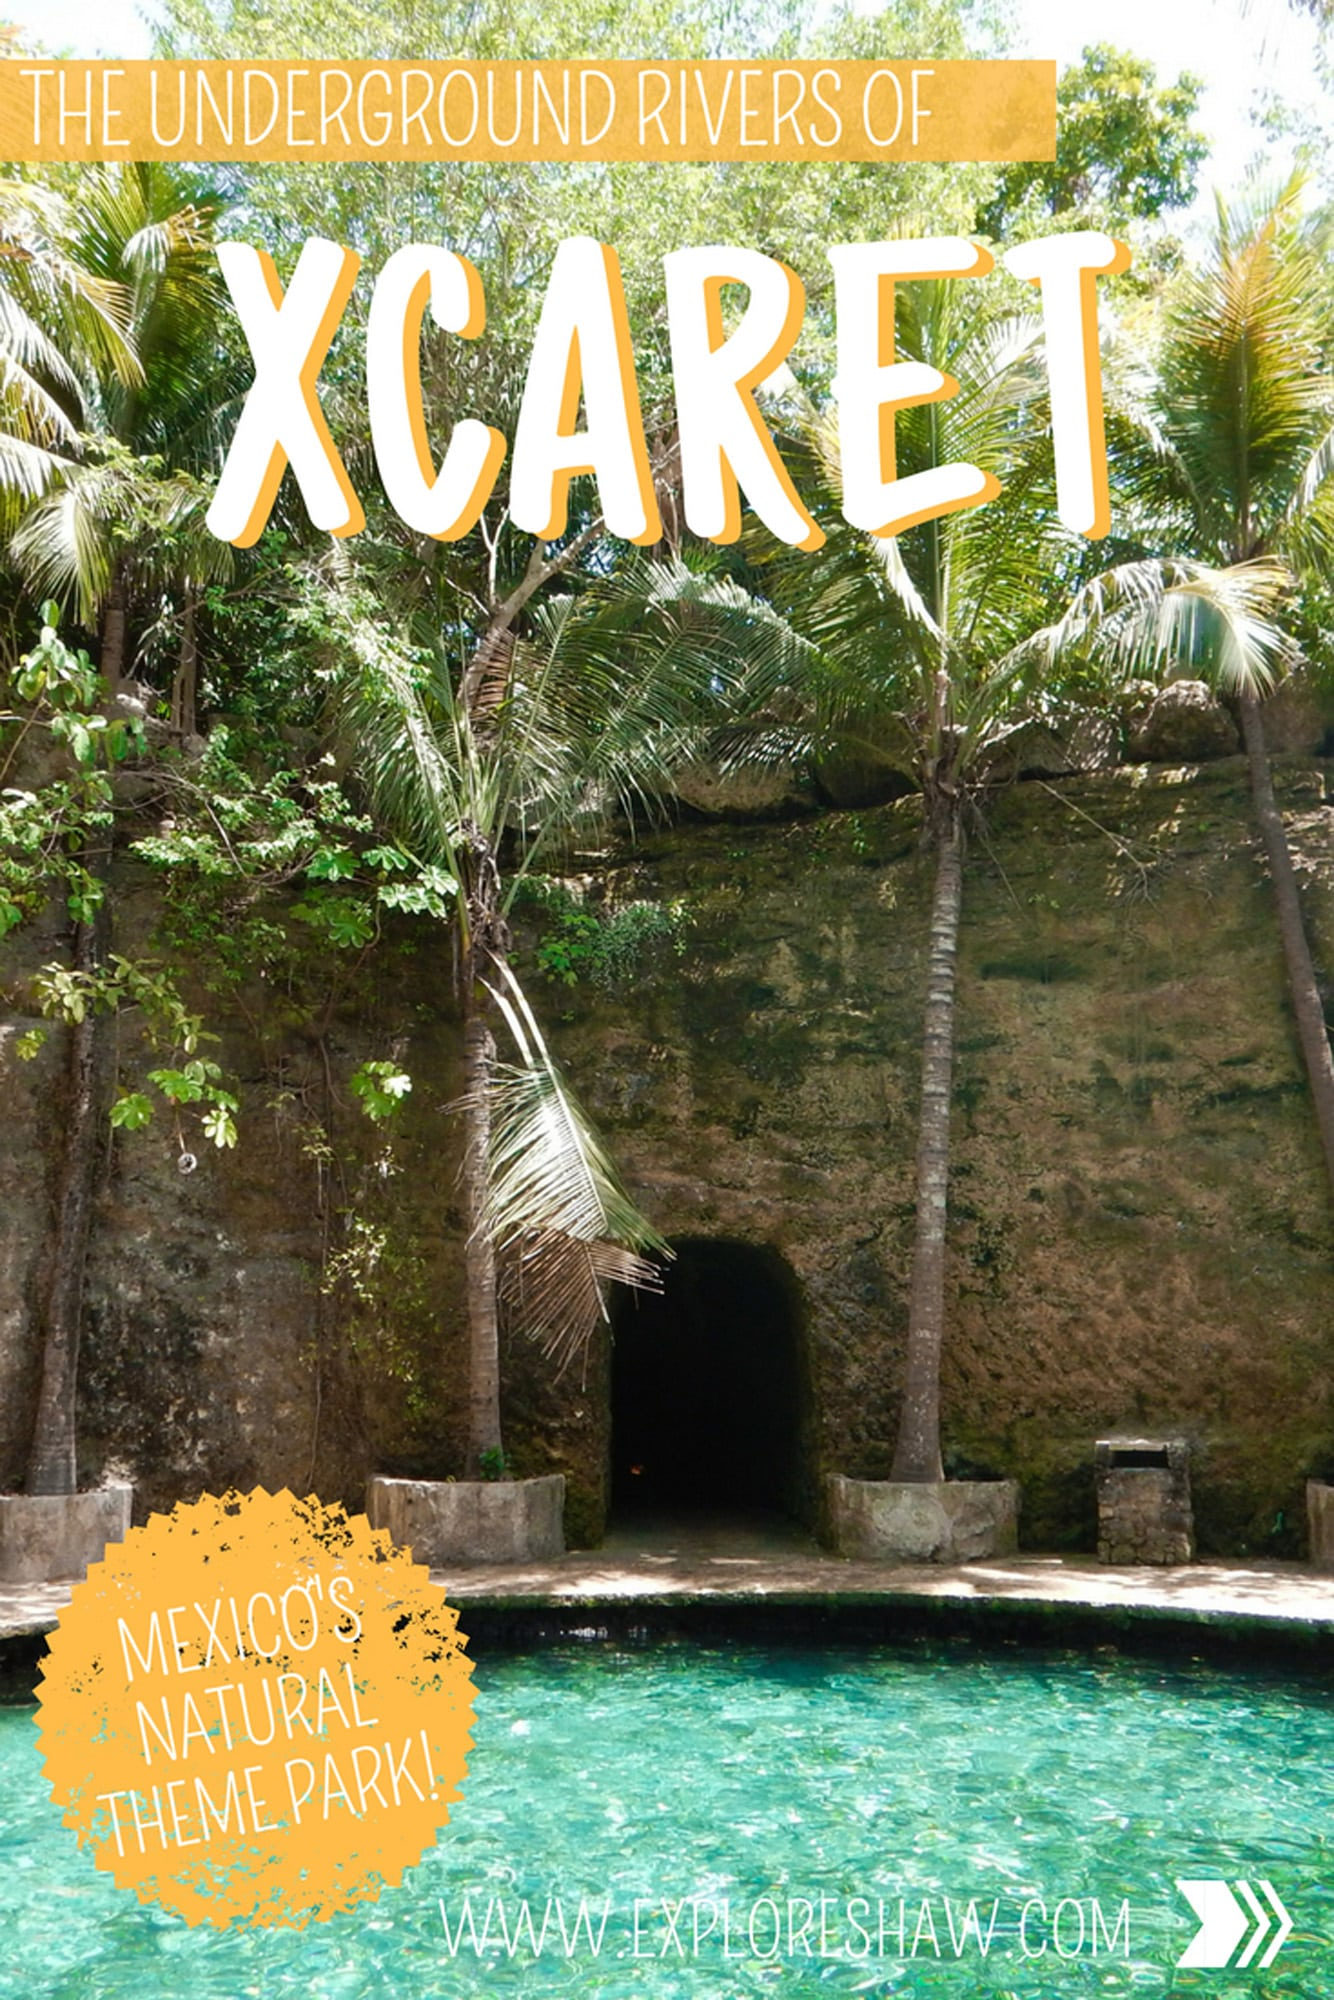 The Underground Rivers Of Xcaret Mexico CentralAmerica YucatanPeninsula PlayadelCarmen